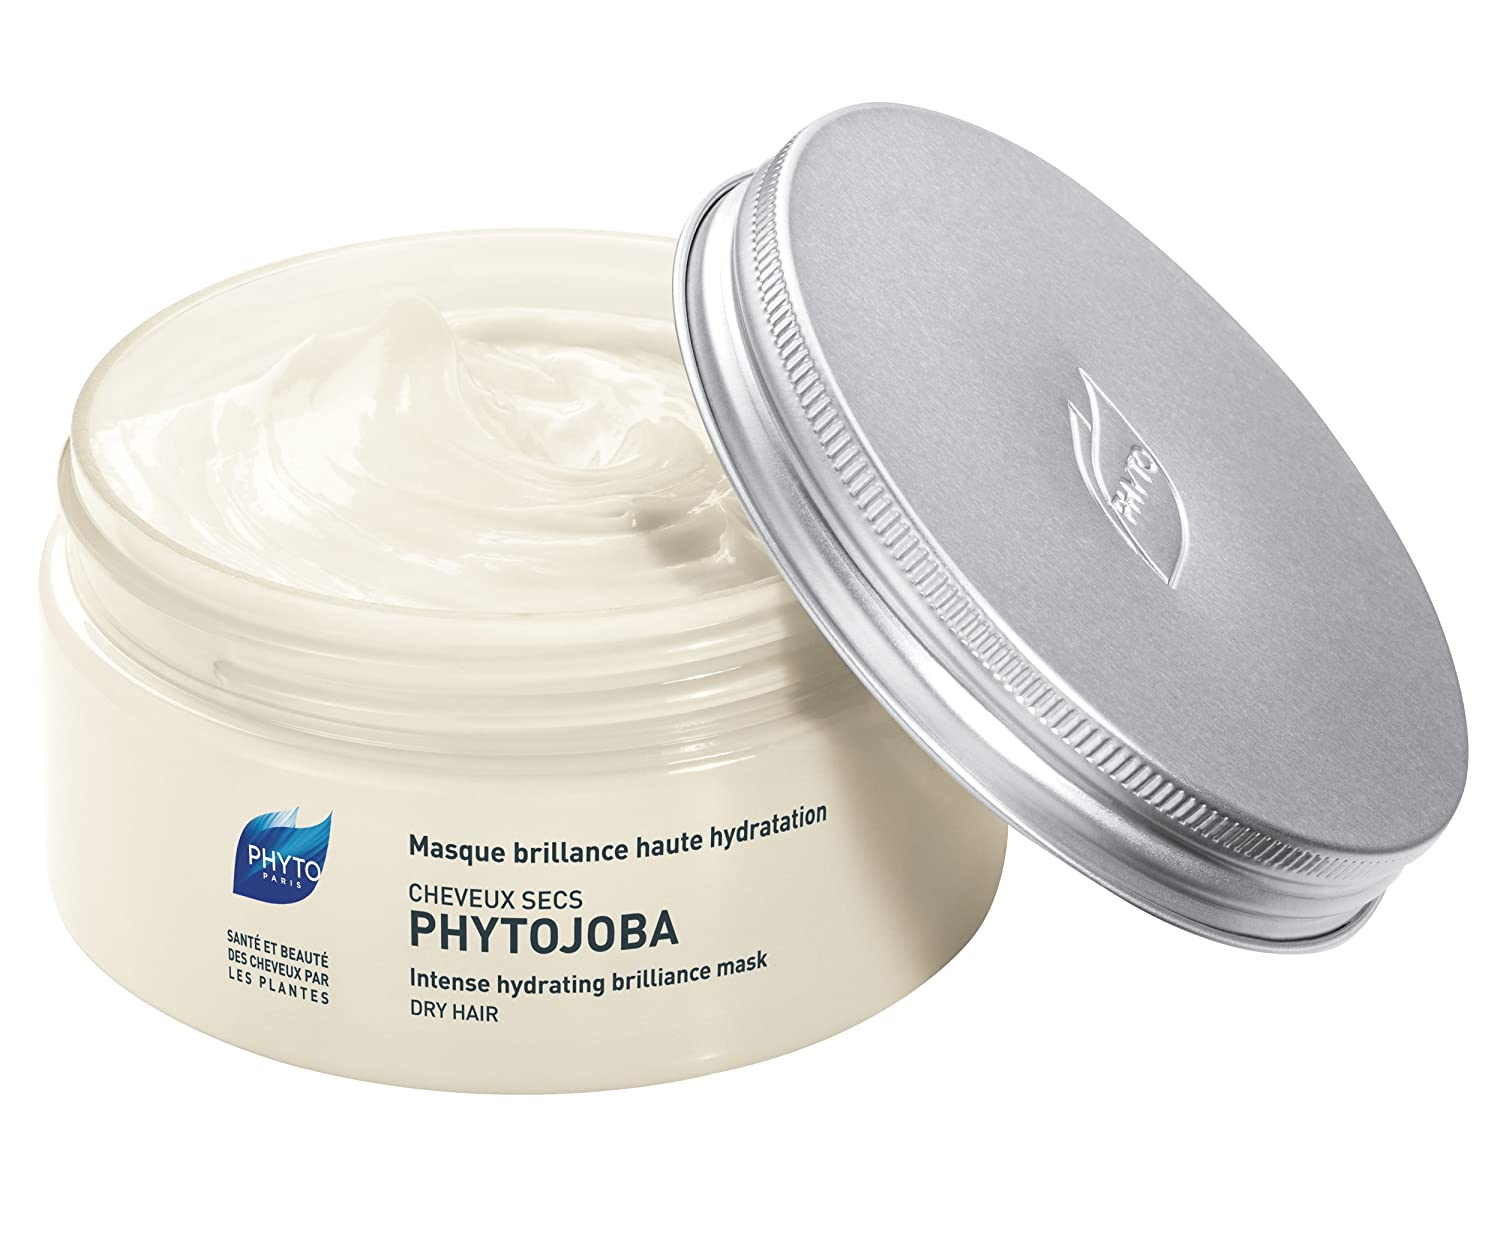 Phytojoba Intense Hydrating Brilliance Mask by Phyto for Unisex - 6.8 oz Mask PHTPHTF36102219